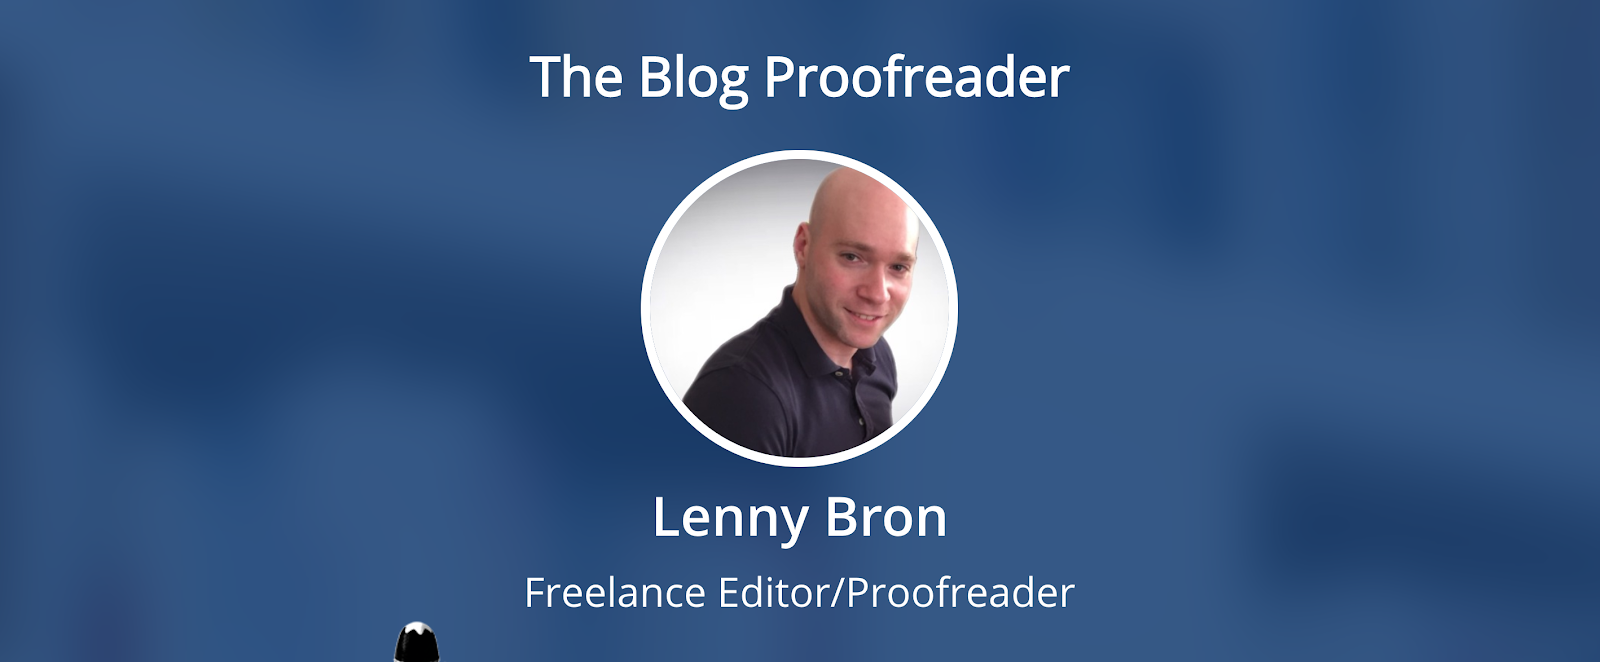 how-i-added-2-000-to-my-monthly-income-proofreading-blog-posts